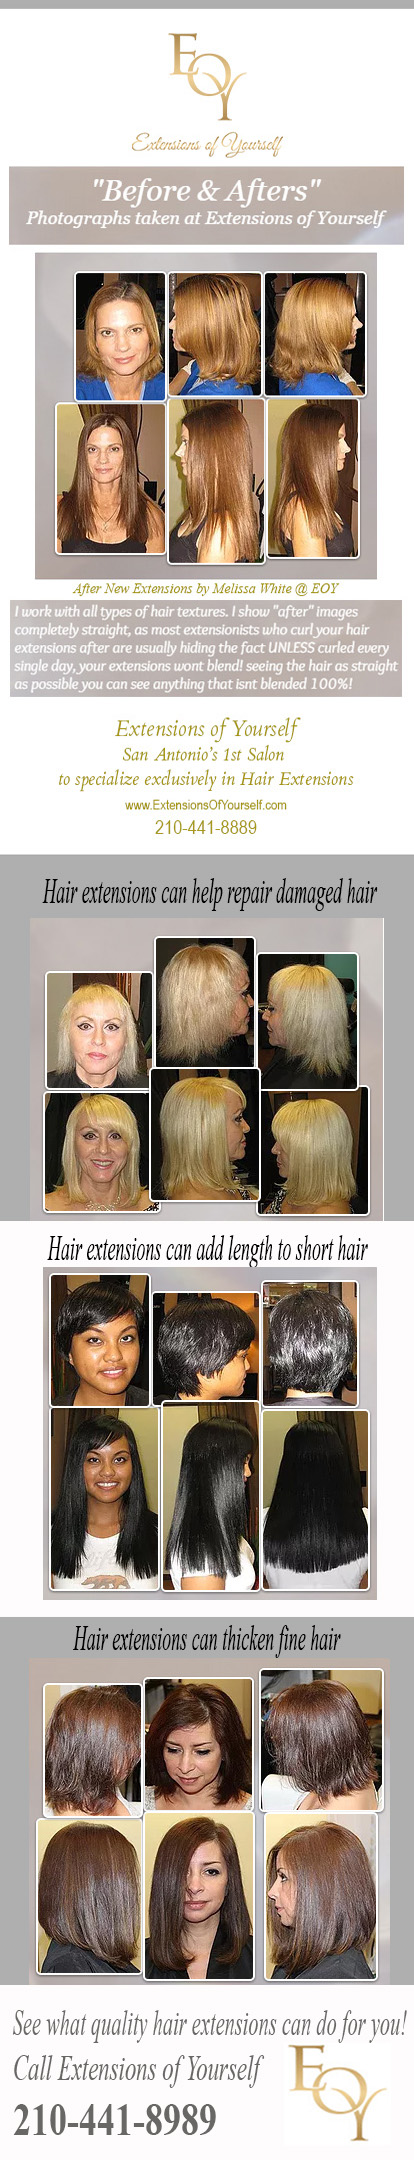 Extensions Of Yourself San Antonios 1st Salon To Specialize